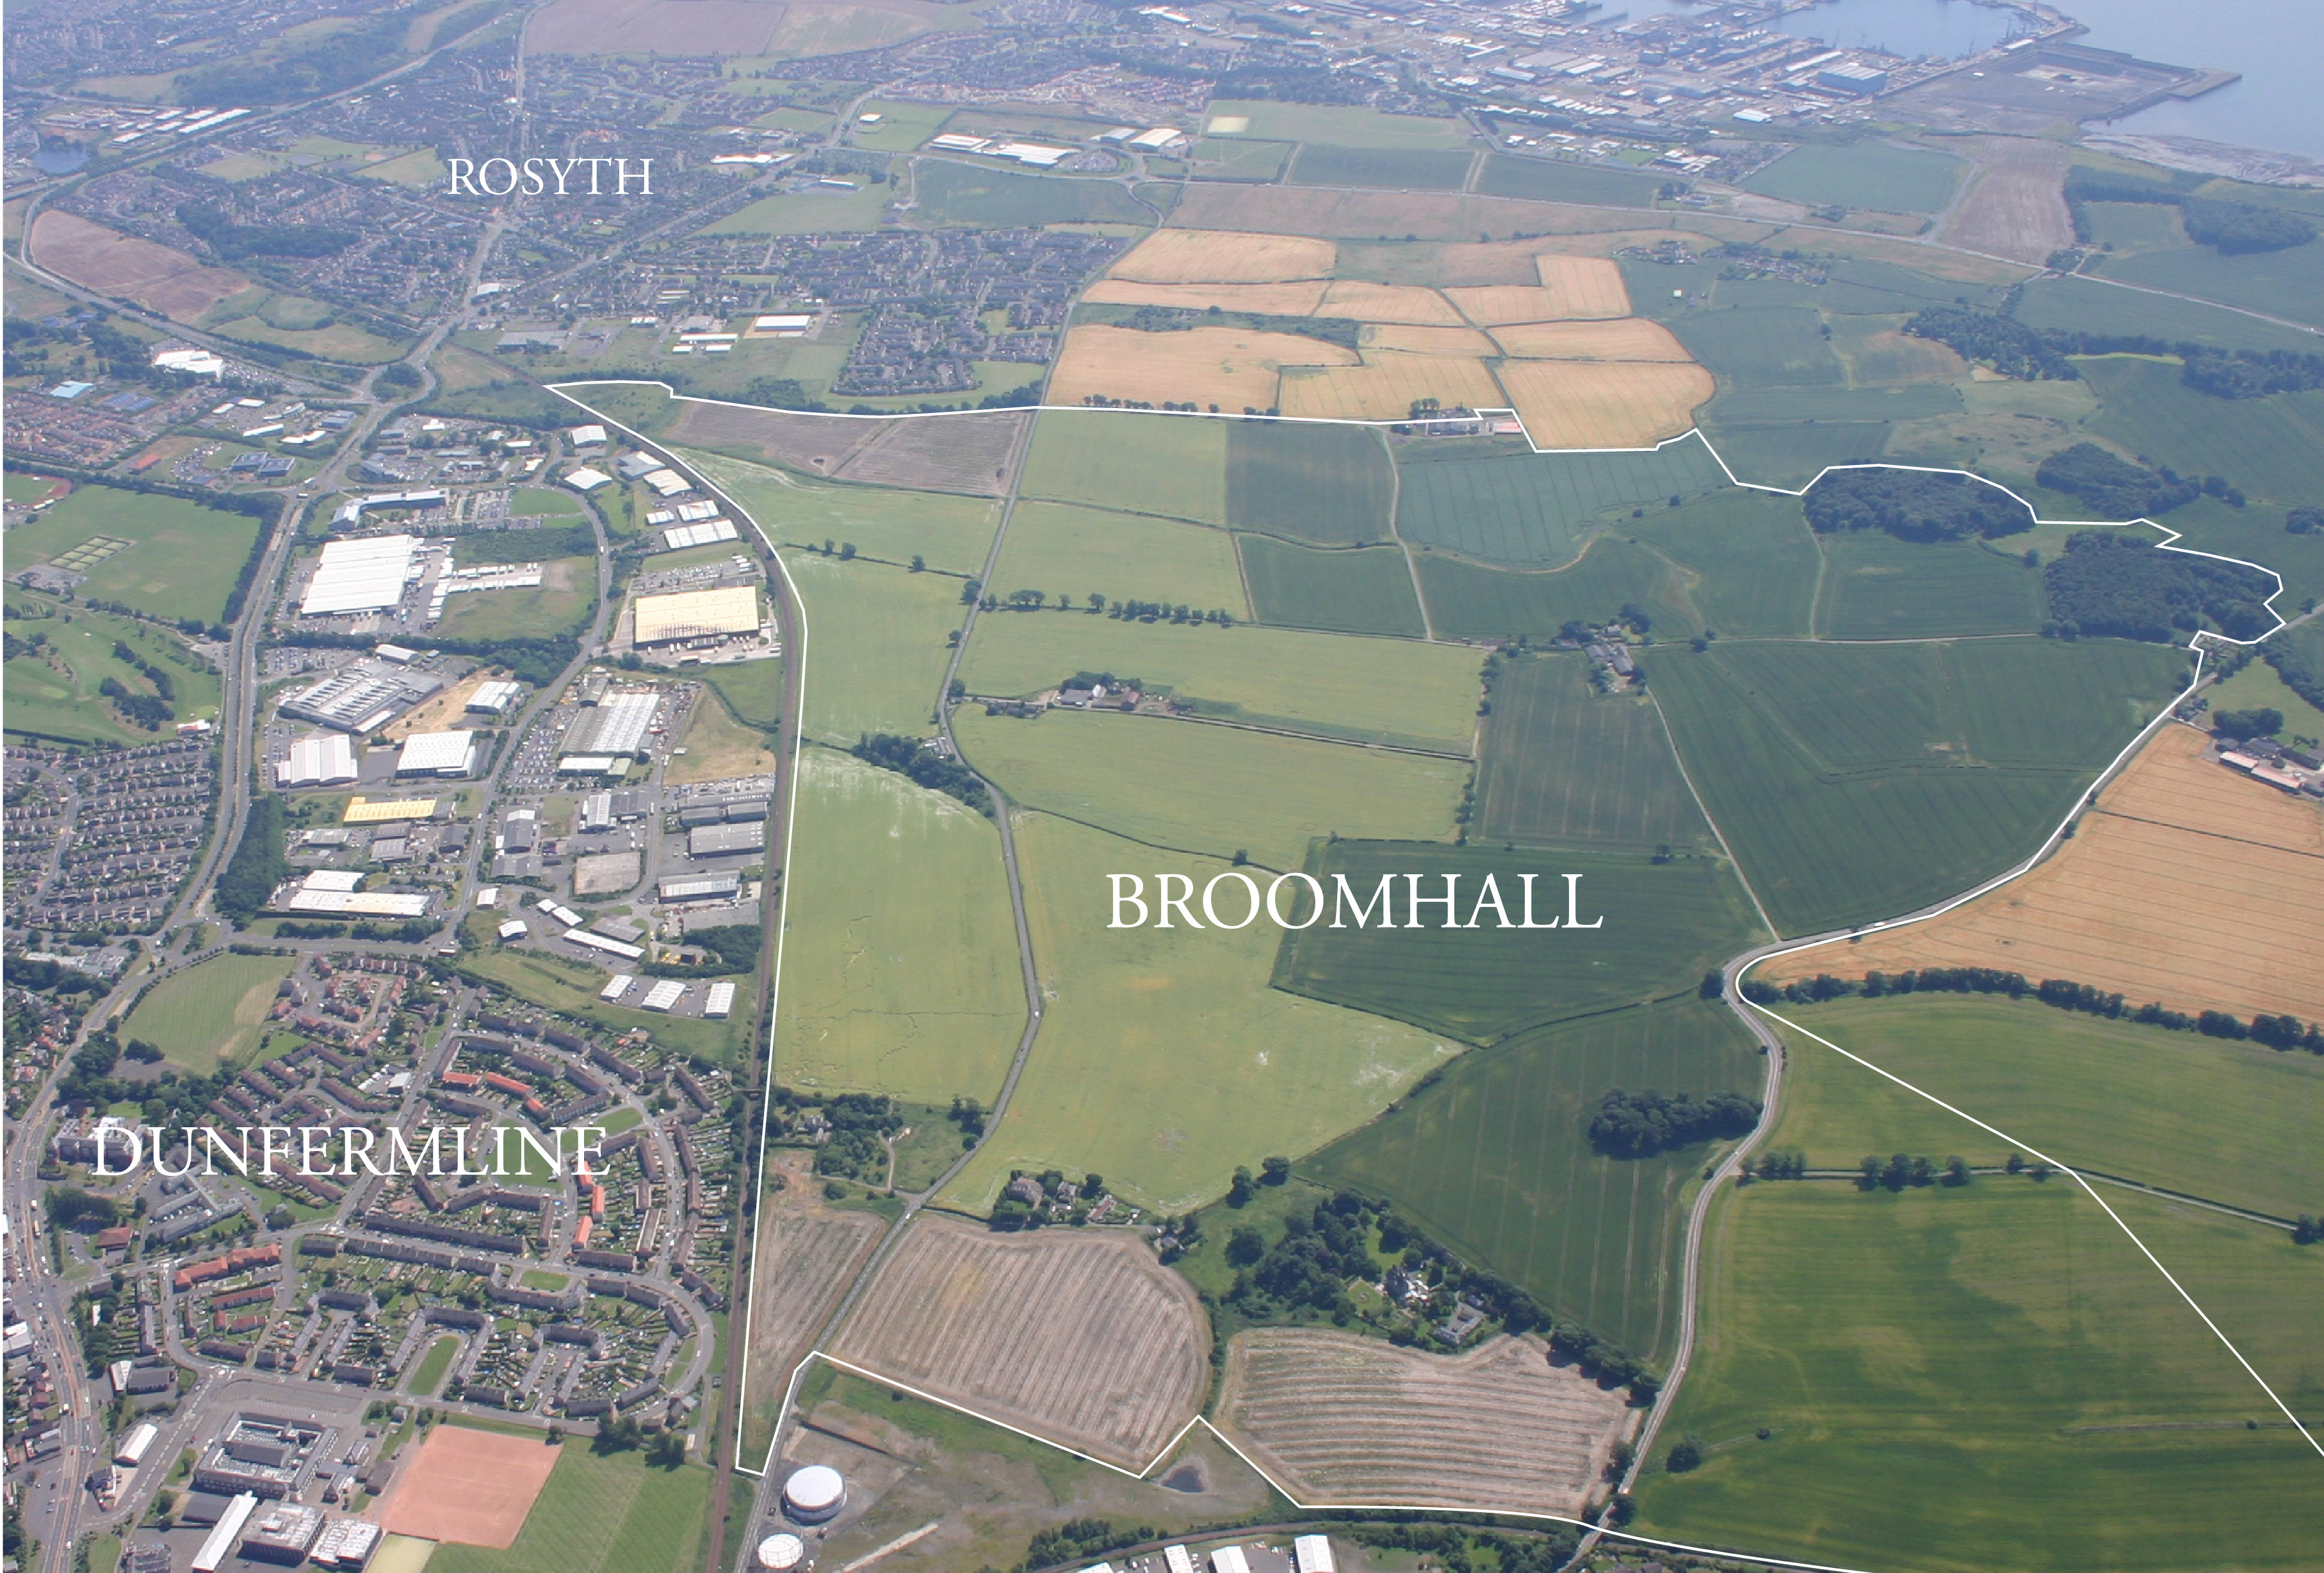 The Western Distributor Road would serve Broomhall, where a major development is planned.